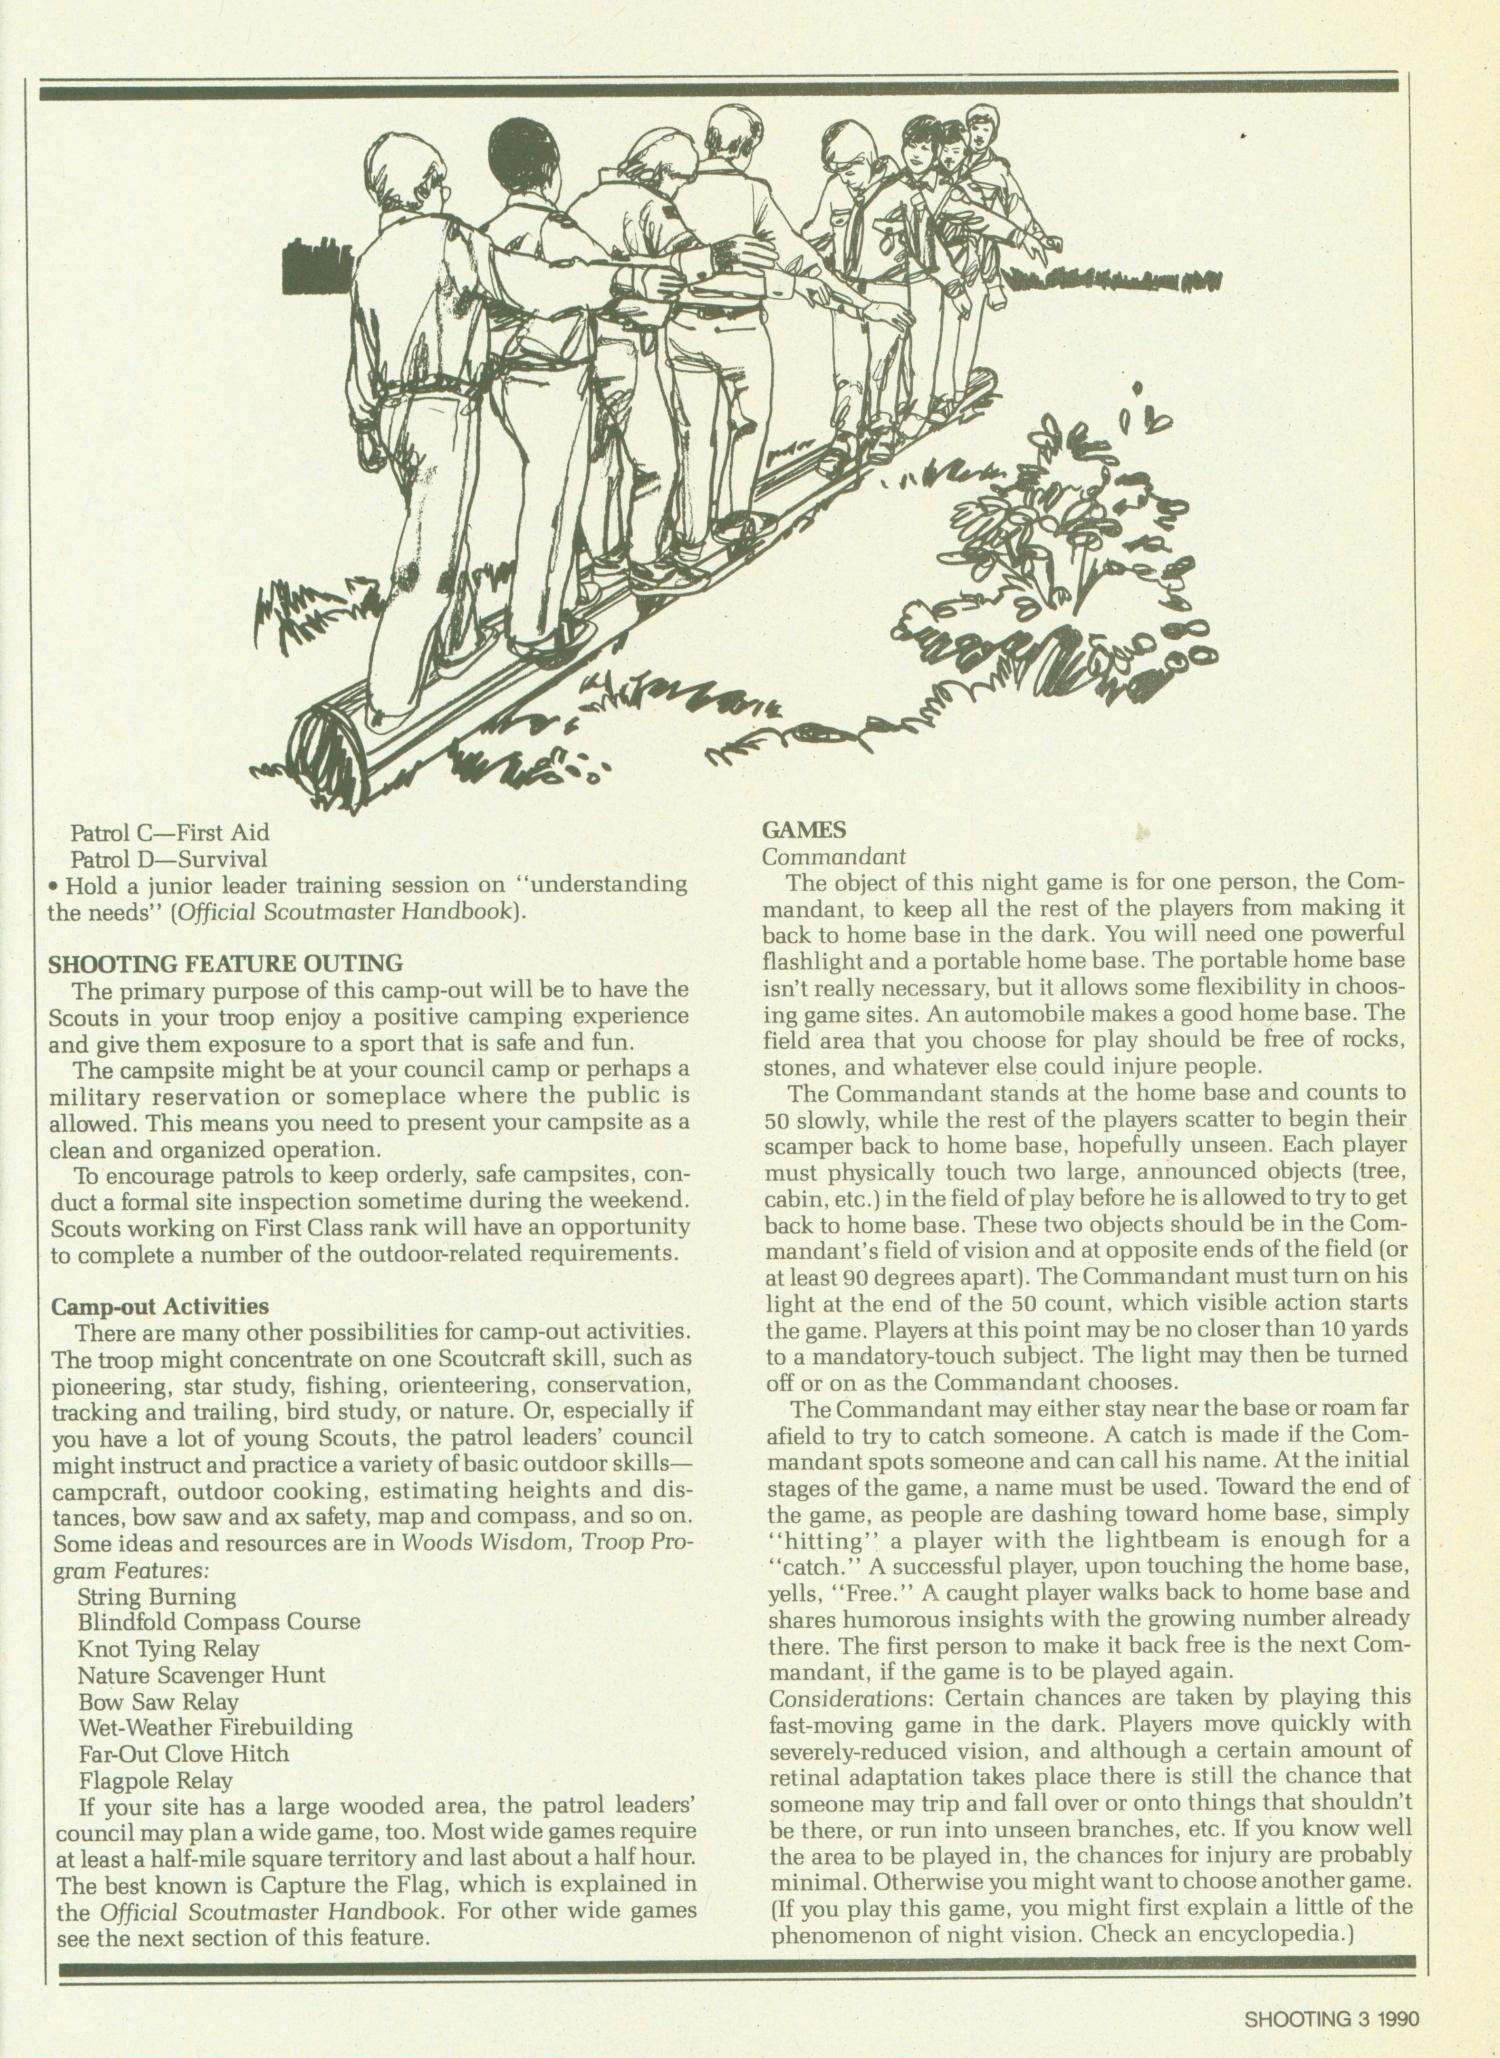 Scouting, Volume 78, Number 3, March-April 1990                                                                                                      3